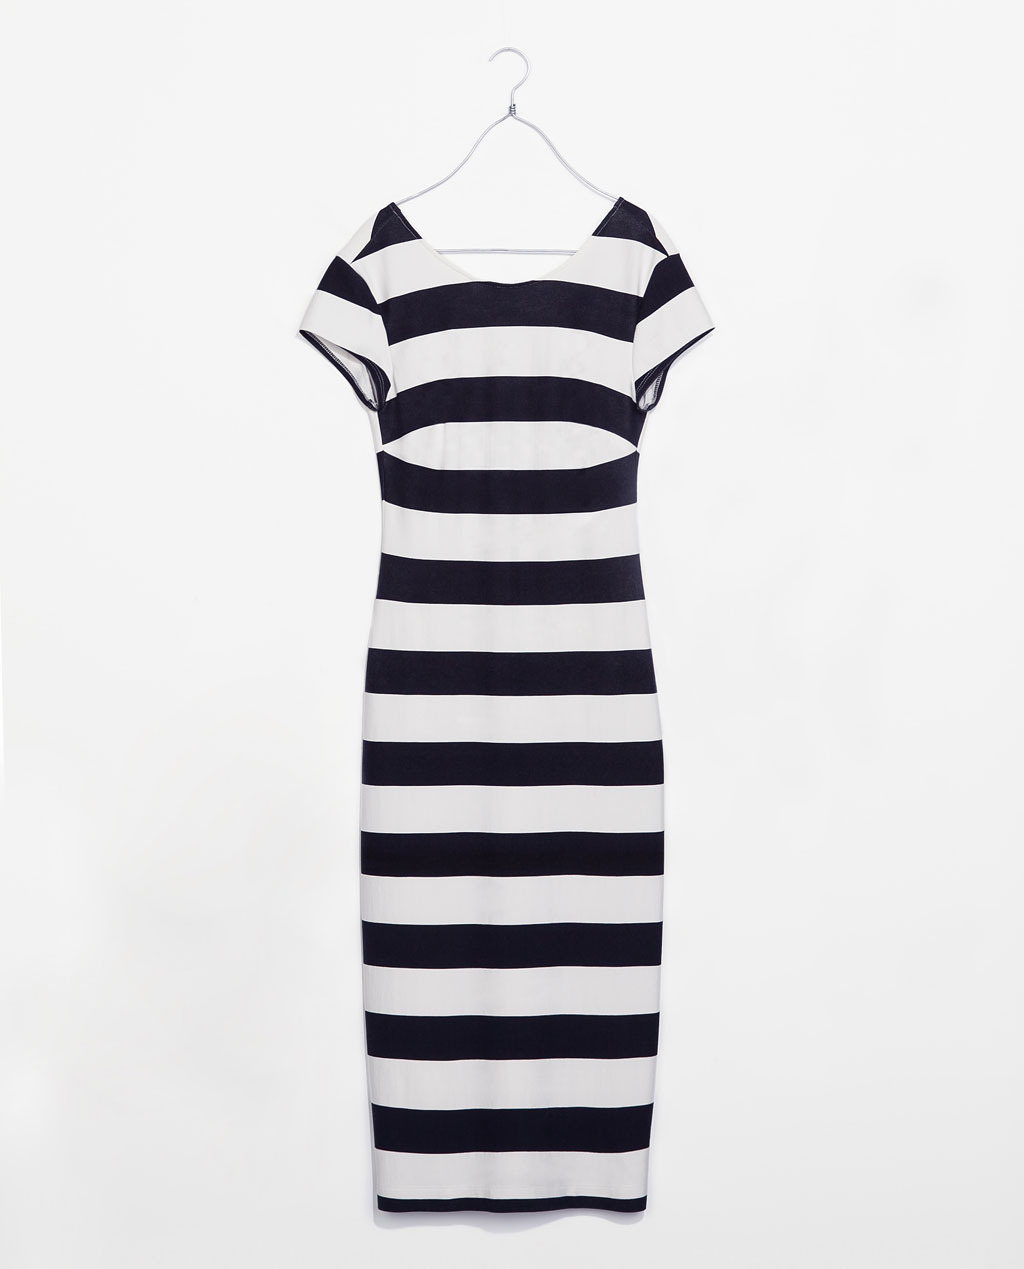 Dress With A Low Cut Back - style: t-shirt; length: below the knee; neckline: slash/boat neckline; pattern: horizontal stripes; back detail: low cut/open back; secondary colour: white; predominant colour: black; occasions: casual, evening, occasion, holiday, creative work; fit: body skimming; fibres: viscose/rayon - stretch; sleeve length: short sleeve; sleeve style: standard; pattern type: fabric; pattern size: standard; texture group: jersey - stretchy/drapey; season: s/s 2014; trends: monochrome